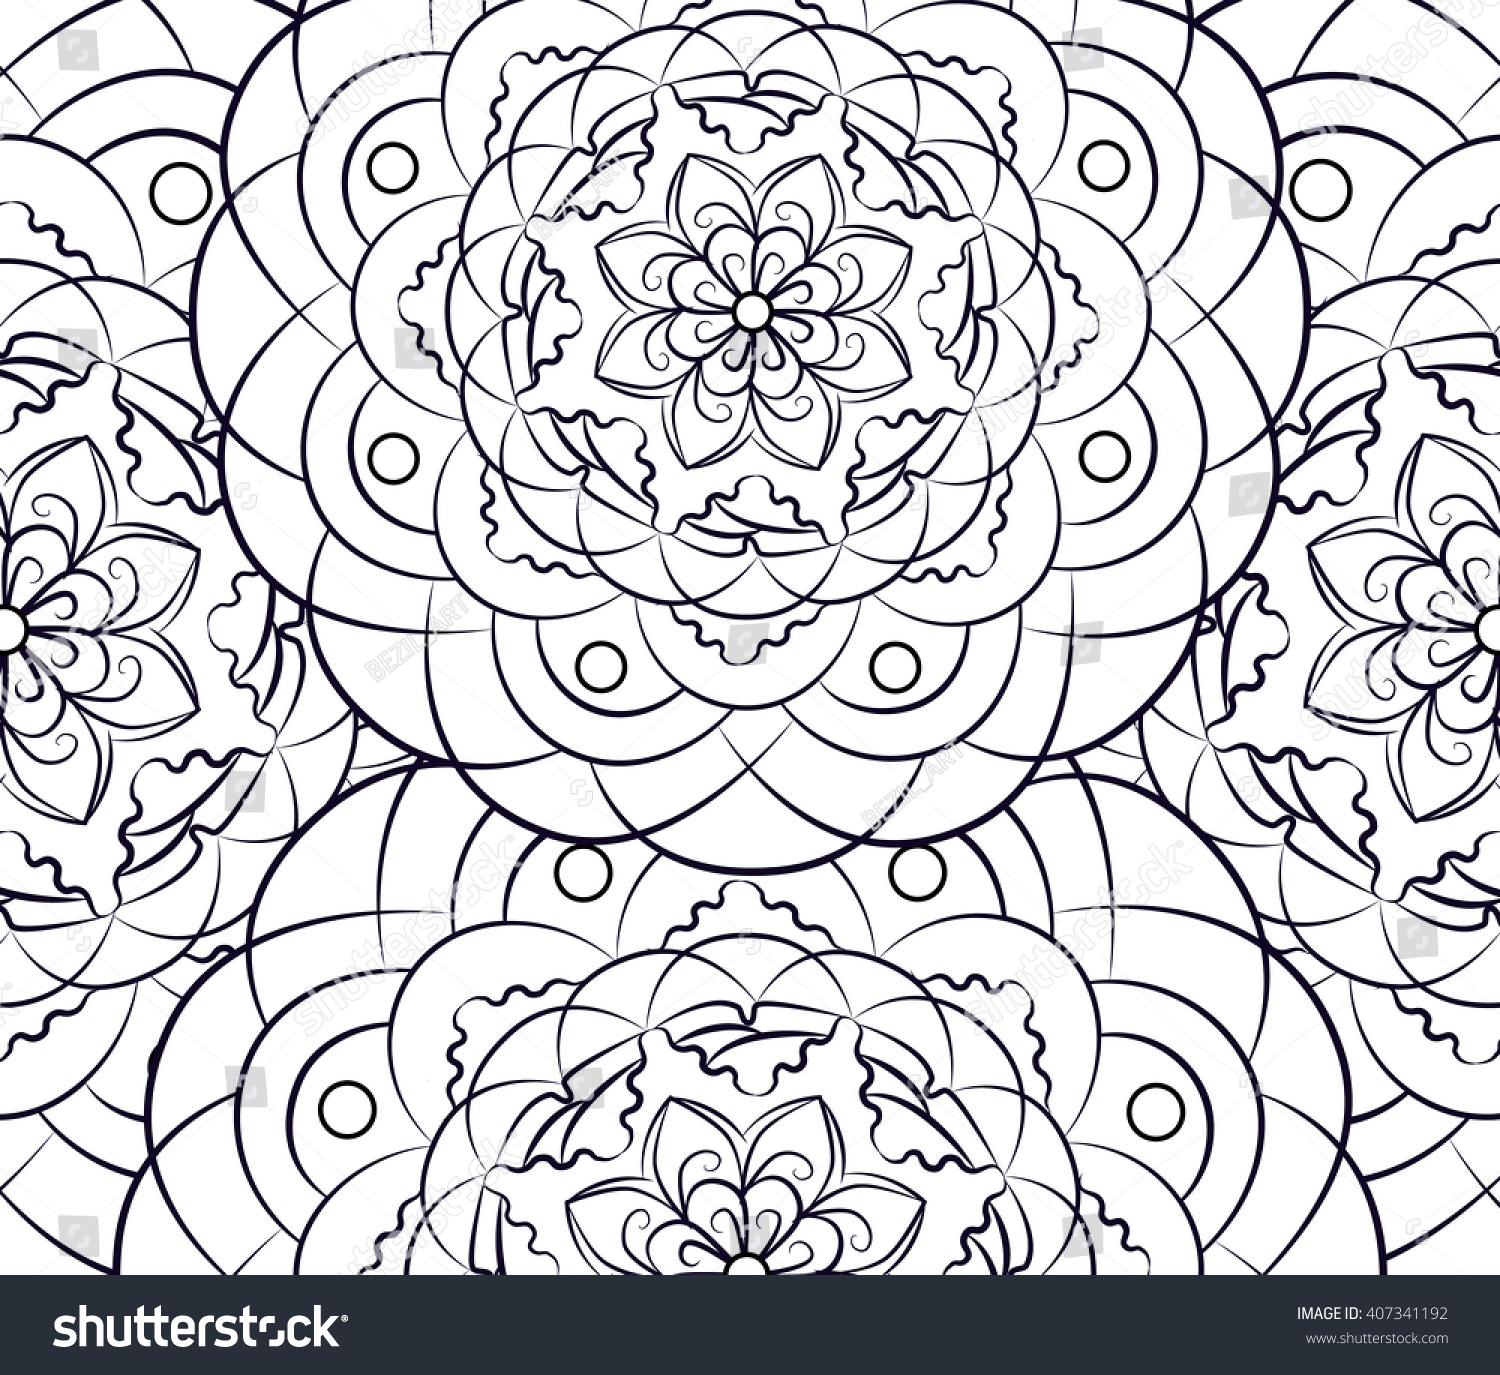 Coloring Pages Adults Older Children Painting Stock Vector (Royalty ...